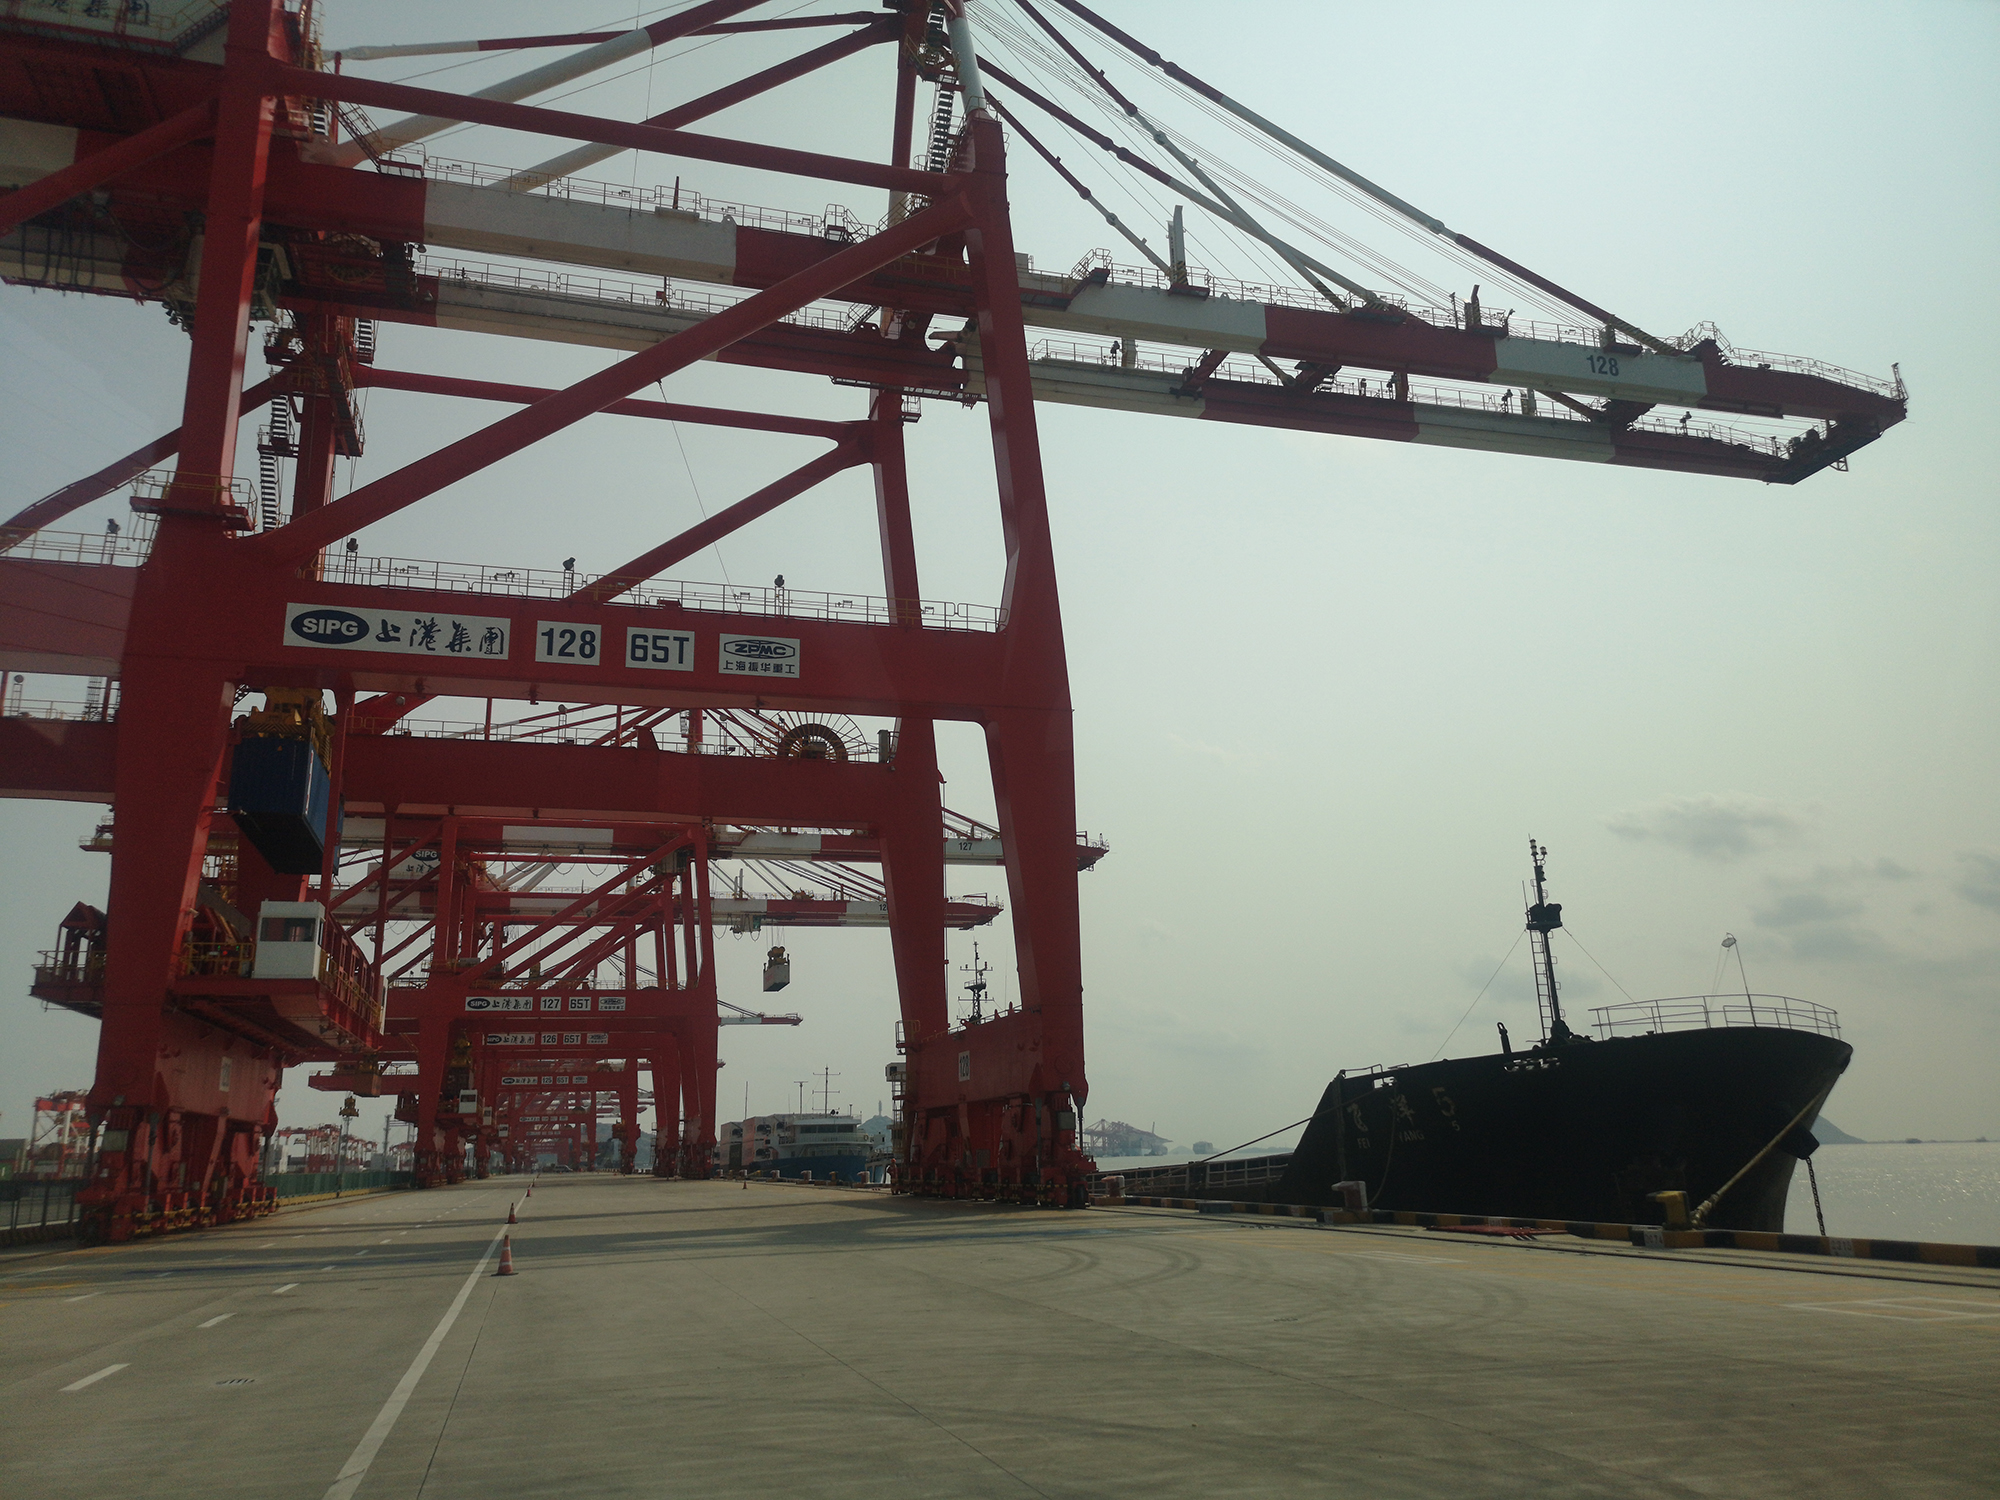 The quay cranes use a double-trolley structure, with the main trolley in remote control and the portal trolley in full automation.